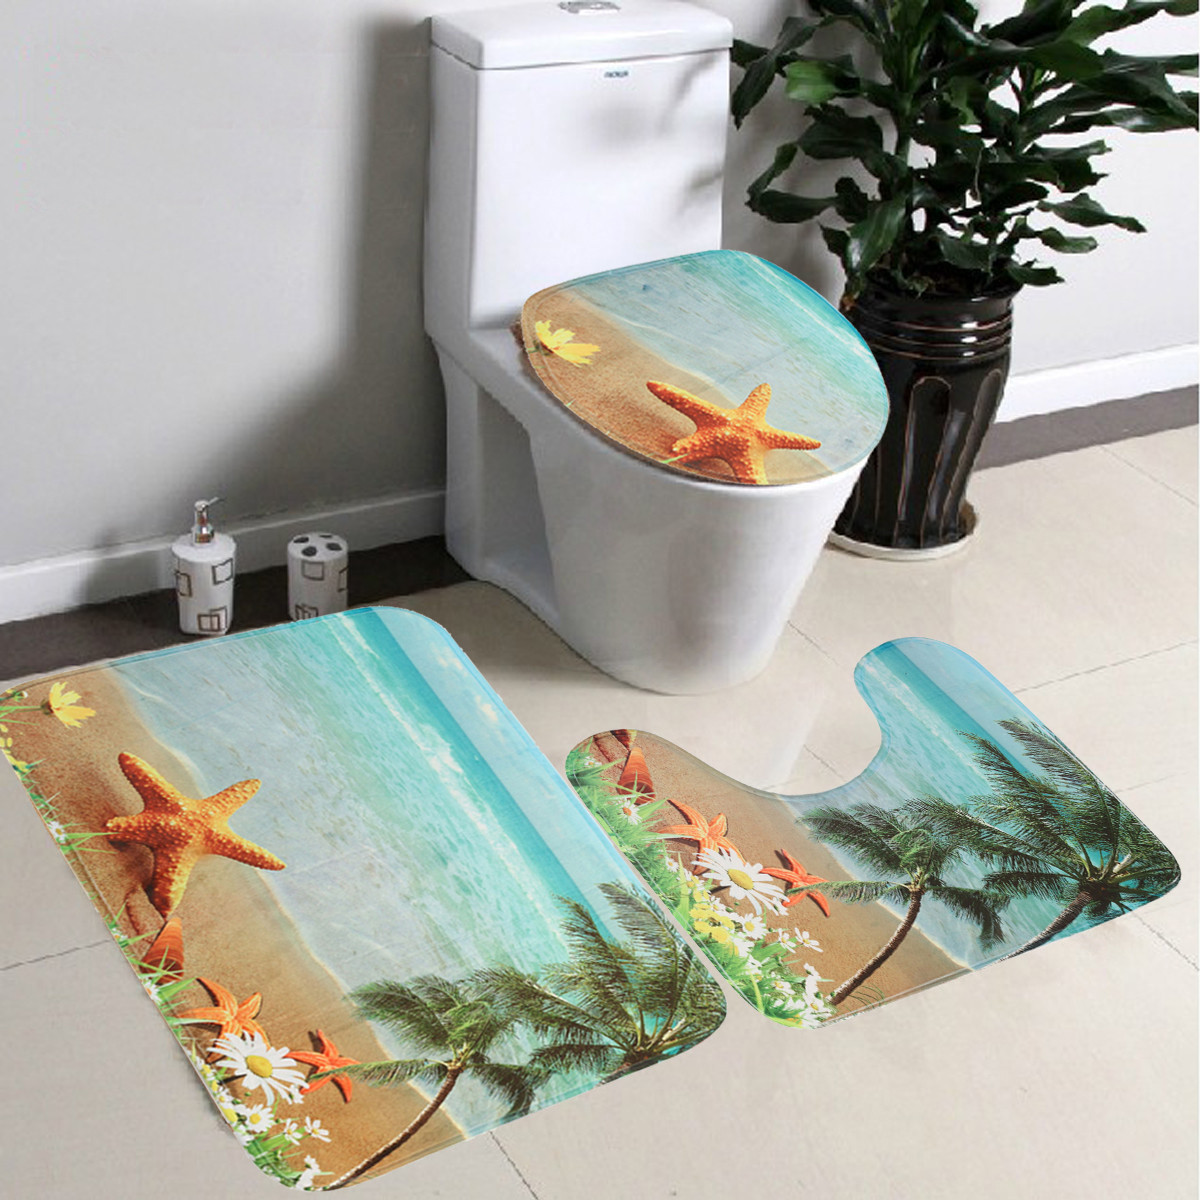 3Pcs Bathroom Set Pedestal Rug + Lid Toilet Cover + Non-slip Bath Mat Doormat Carpet Black&White